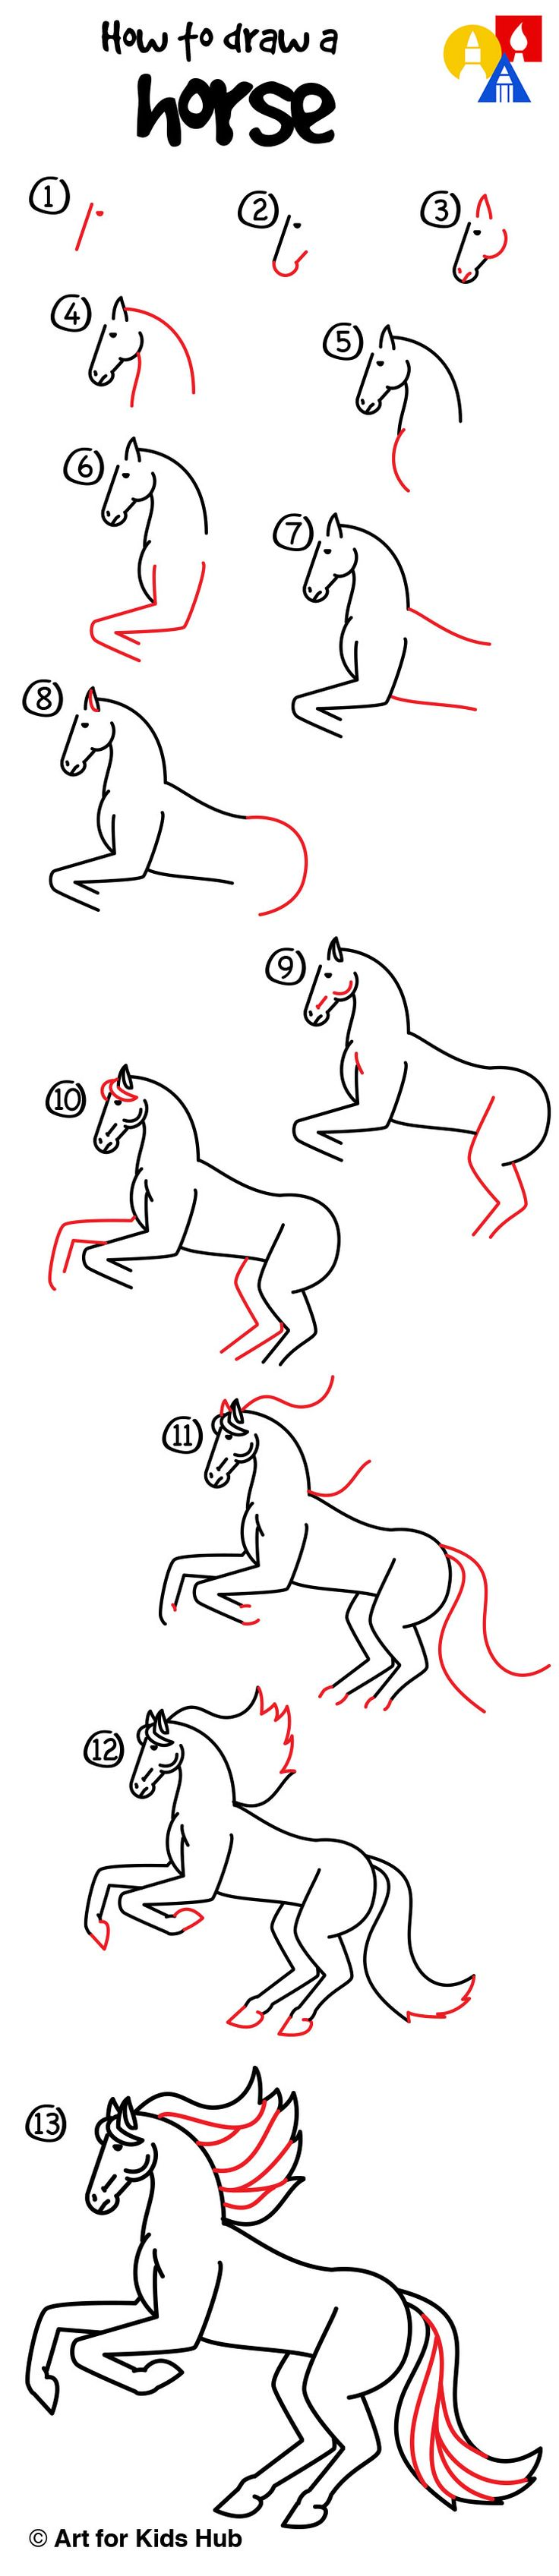 How To Draw A Realistic Horse (part 1)  Art For Kids Hub